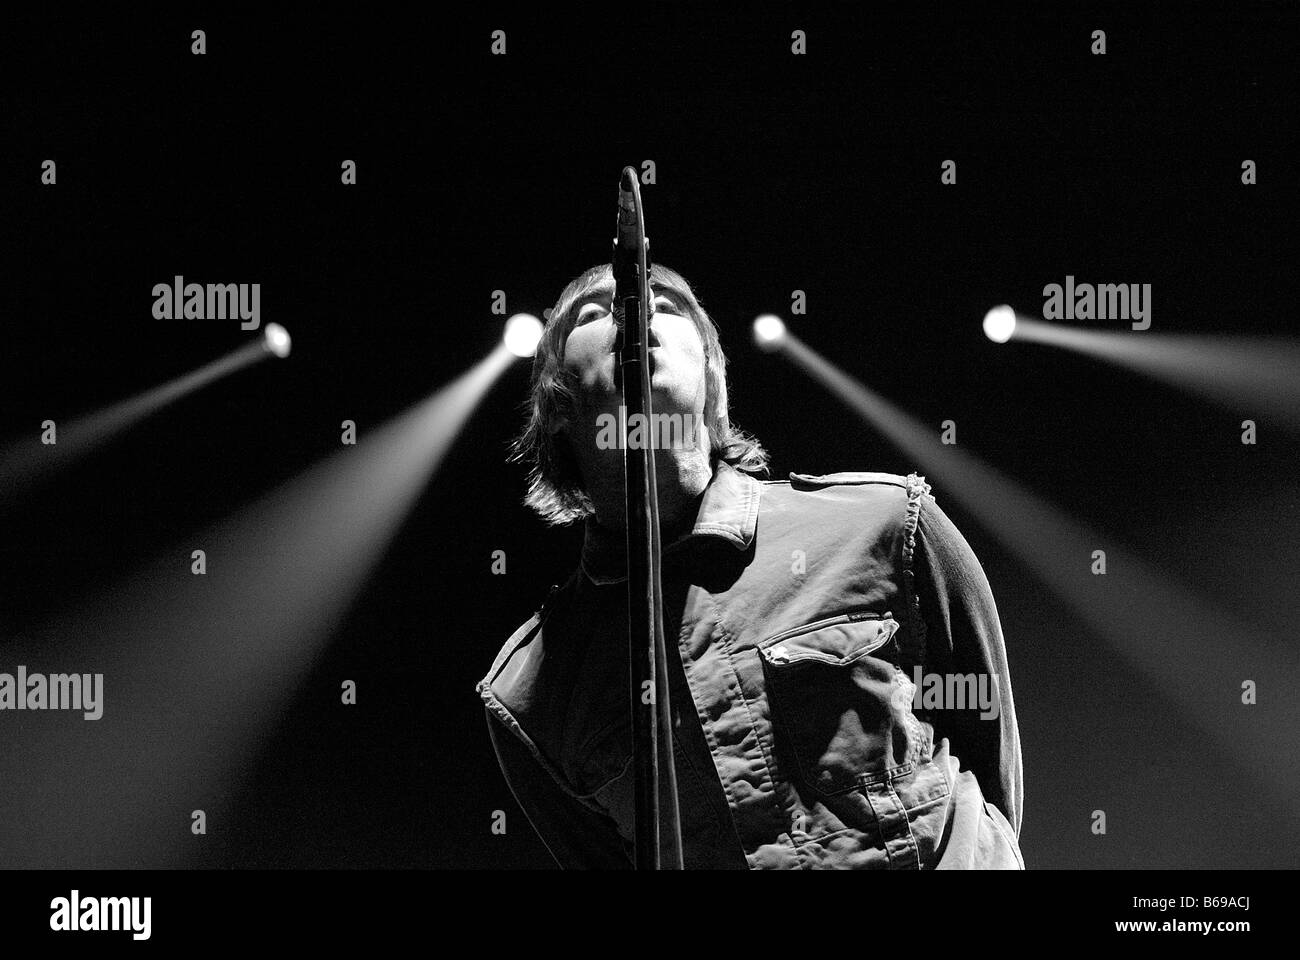 Liam Gallagher from Oasis in concert at the Odyssey Arena - Stock Image